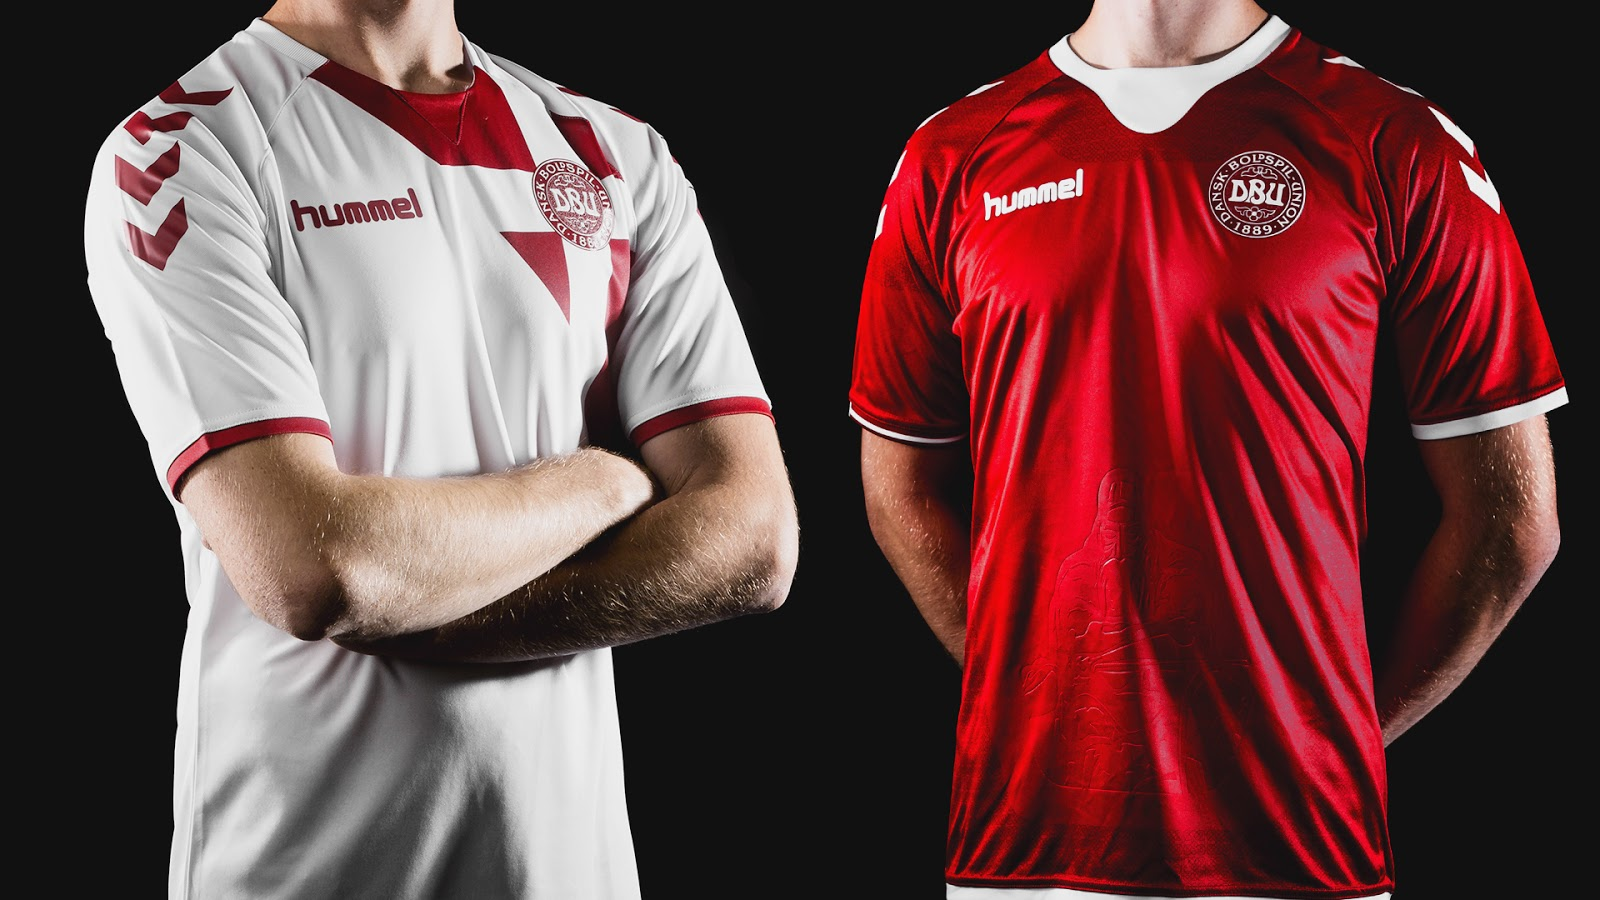 buy popular 87c86 d8d38 Denmark 2018 World Cup Kits Teased - All You Need to Know ...